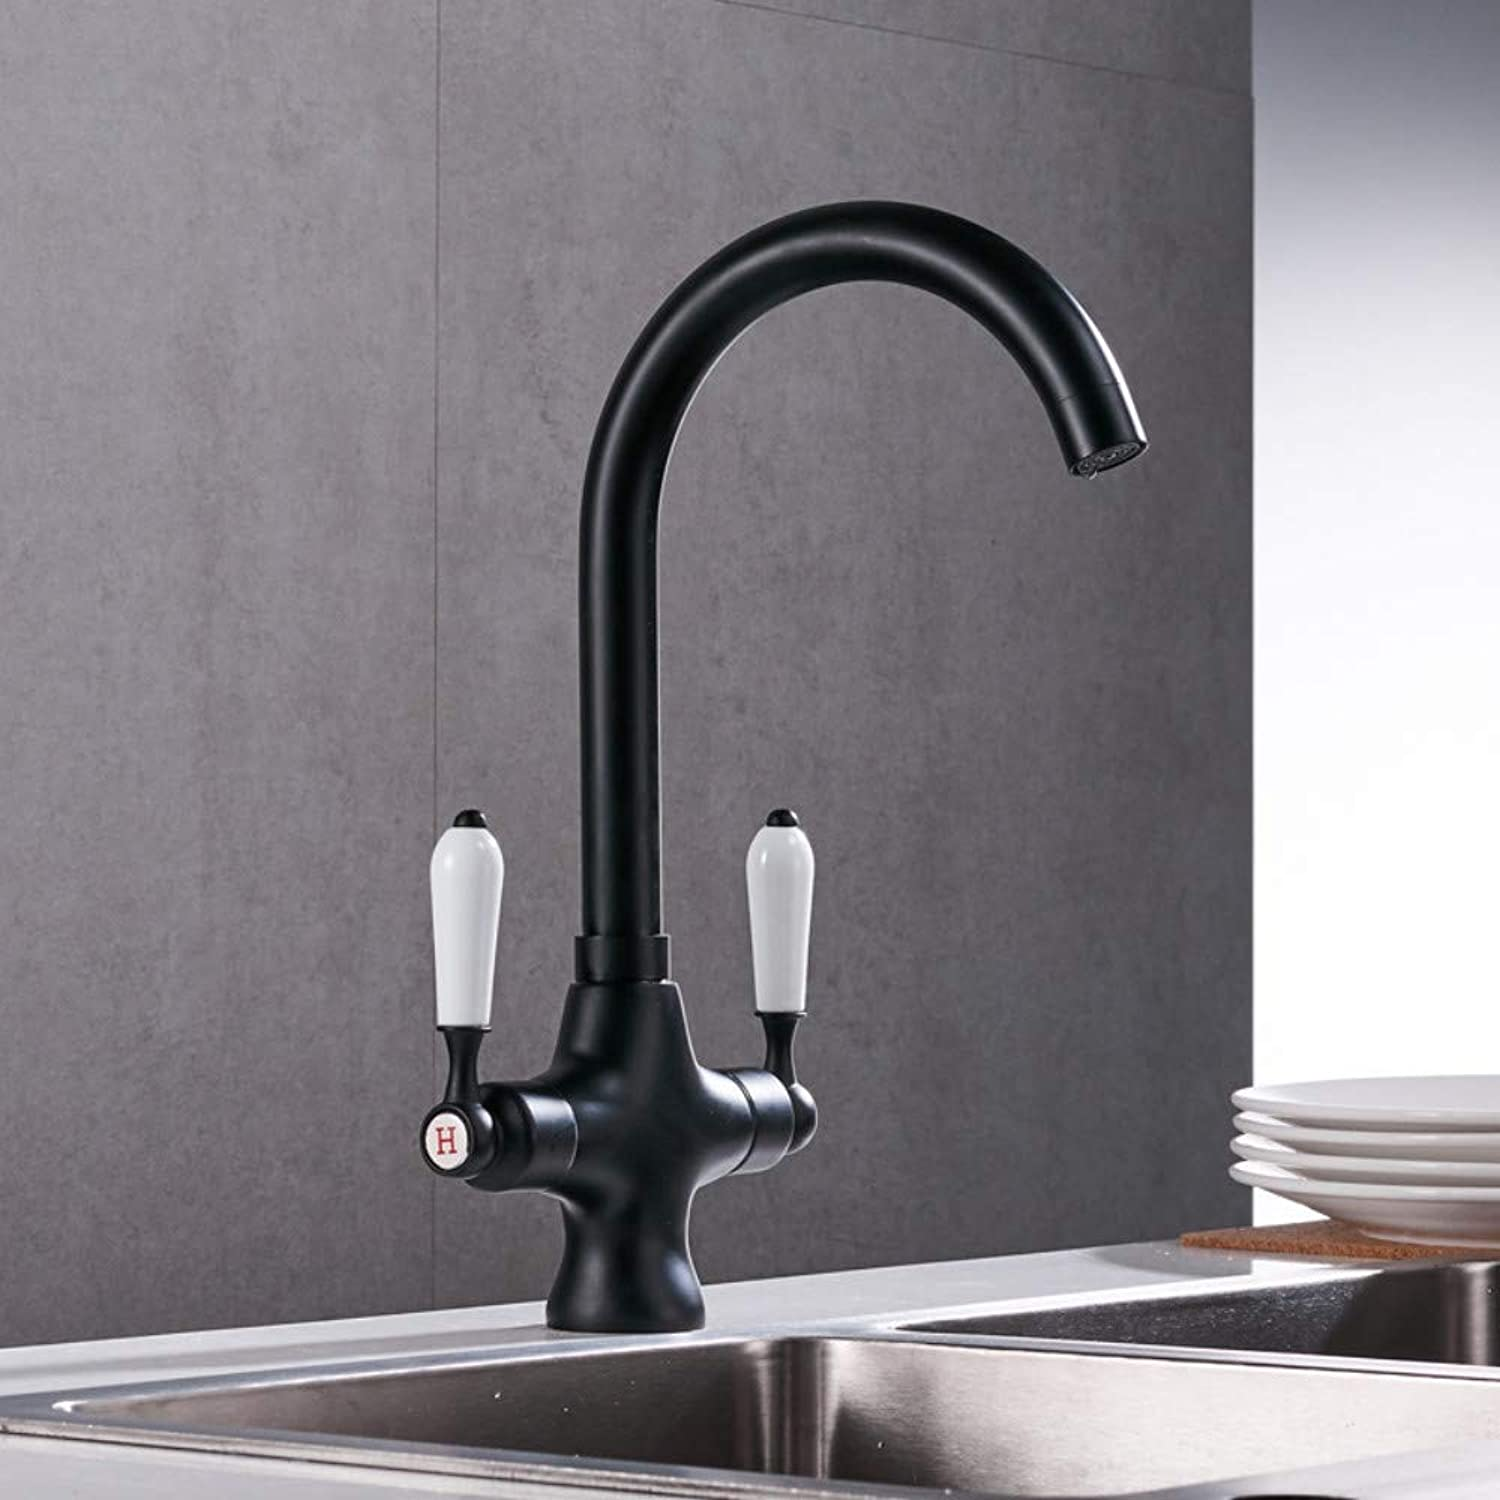 Brass Black Ceramic Double Handle Hot and Cold Faucet Modern Sitting Kitchen Sink Mixer